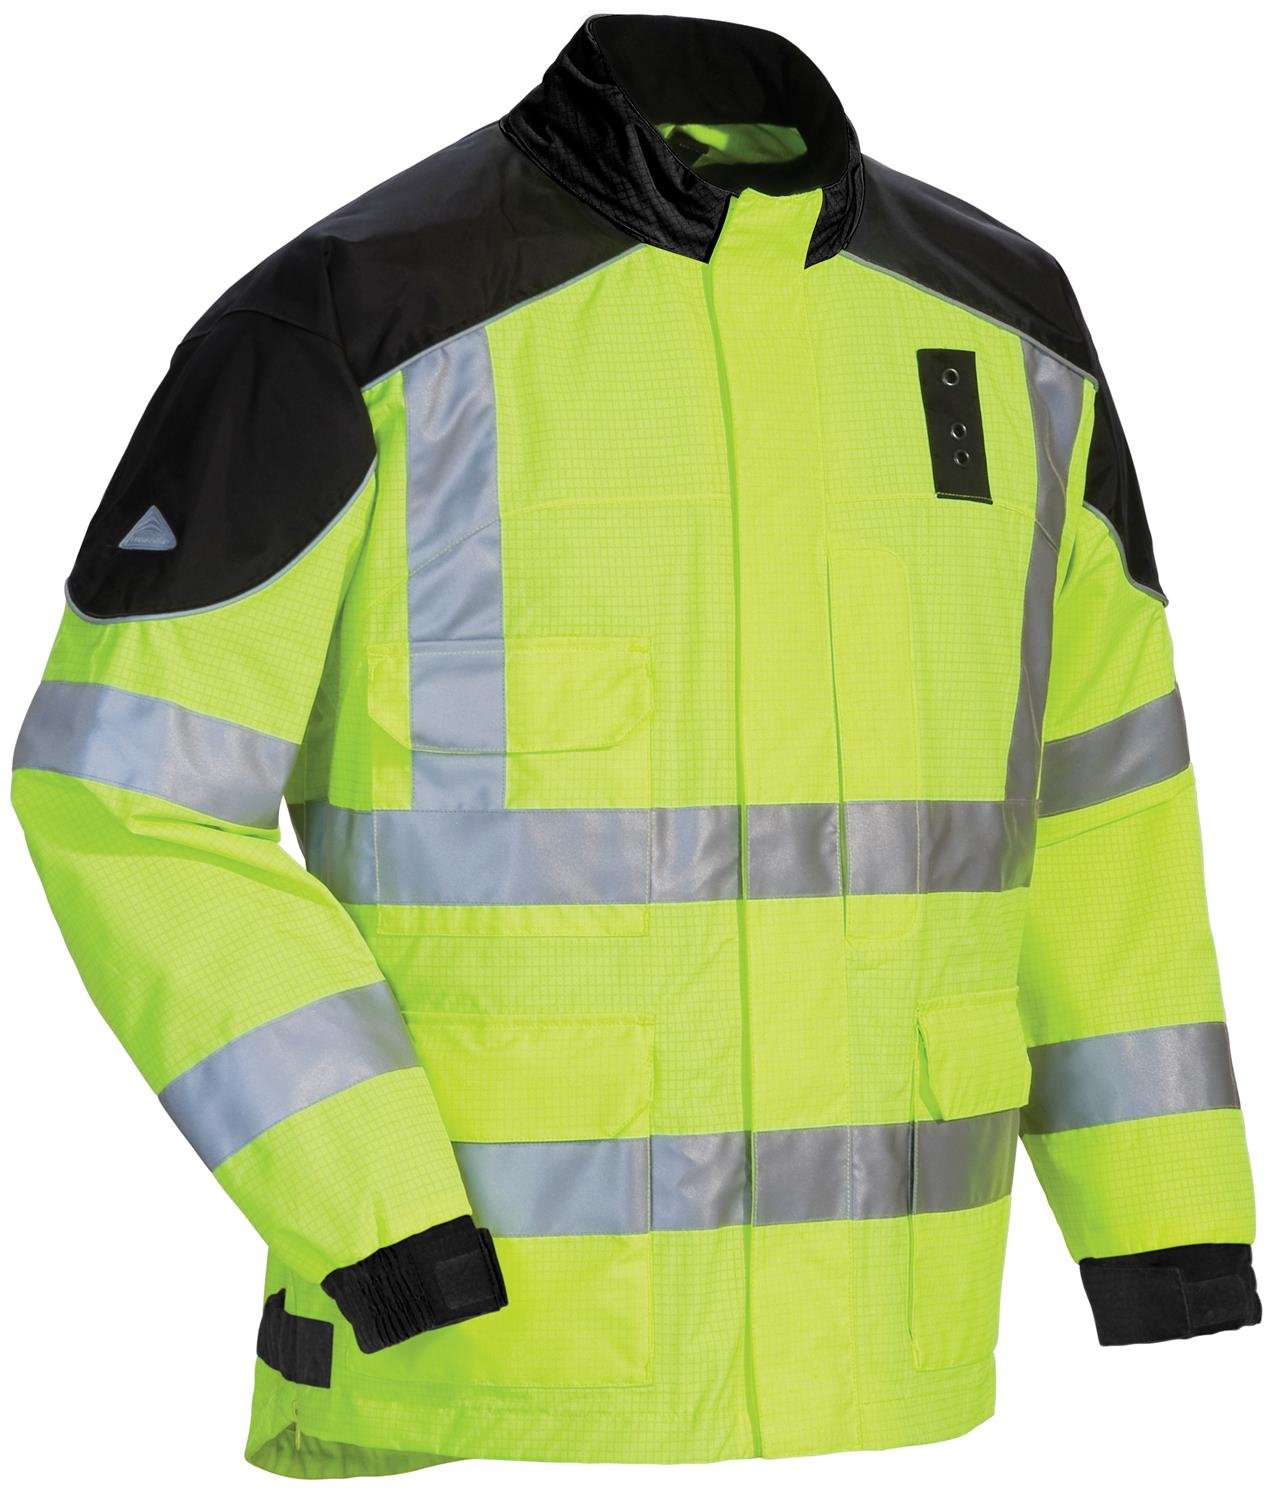 Tour Master Sentinel LE Rain Jacket - X-Large/Hi-Visibility Yellow by Tourmaster